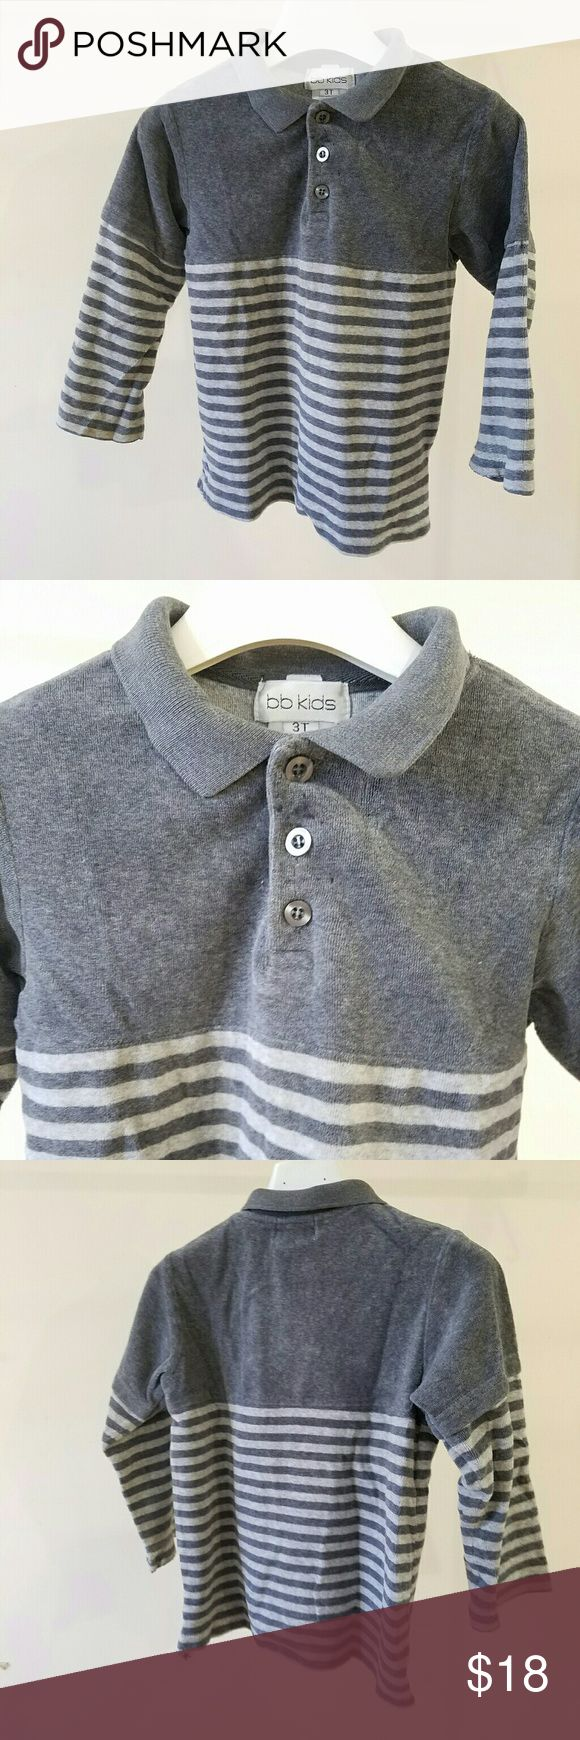 BB Kids Brand Boys Polo Shirt Gray 3T BB Kids Brand, Boys Kids Children Clothing , Top Polo Shirt , Size 3T, Gray Color, Striped Design, Long Sleeves, Classic Neckline, Cotton Blend , Dressy Special Occasion Wear And/Or Everyday School Wear, All Season, Excellent Condition, Smoke Free Pet Free Home. BB Kids Shirts & Tops Polos